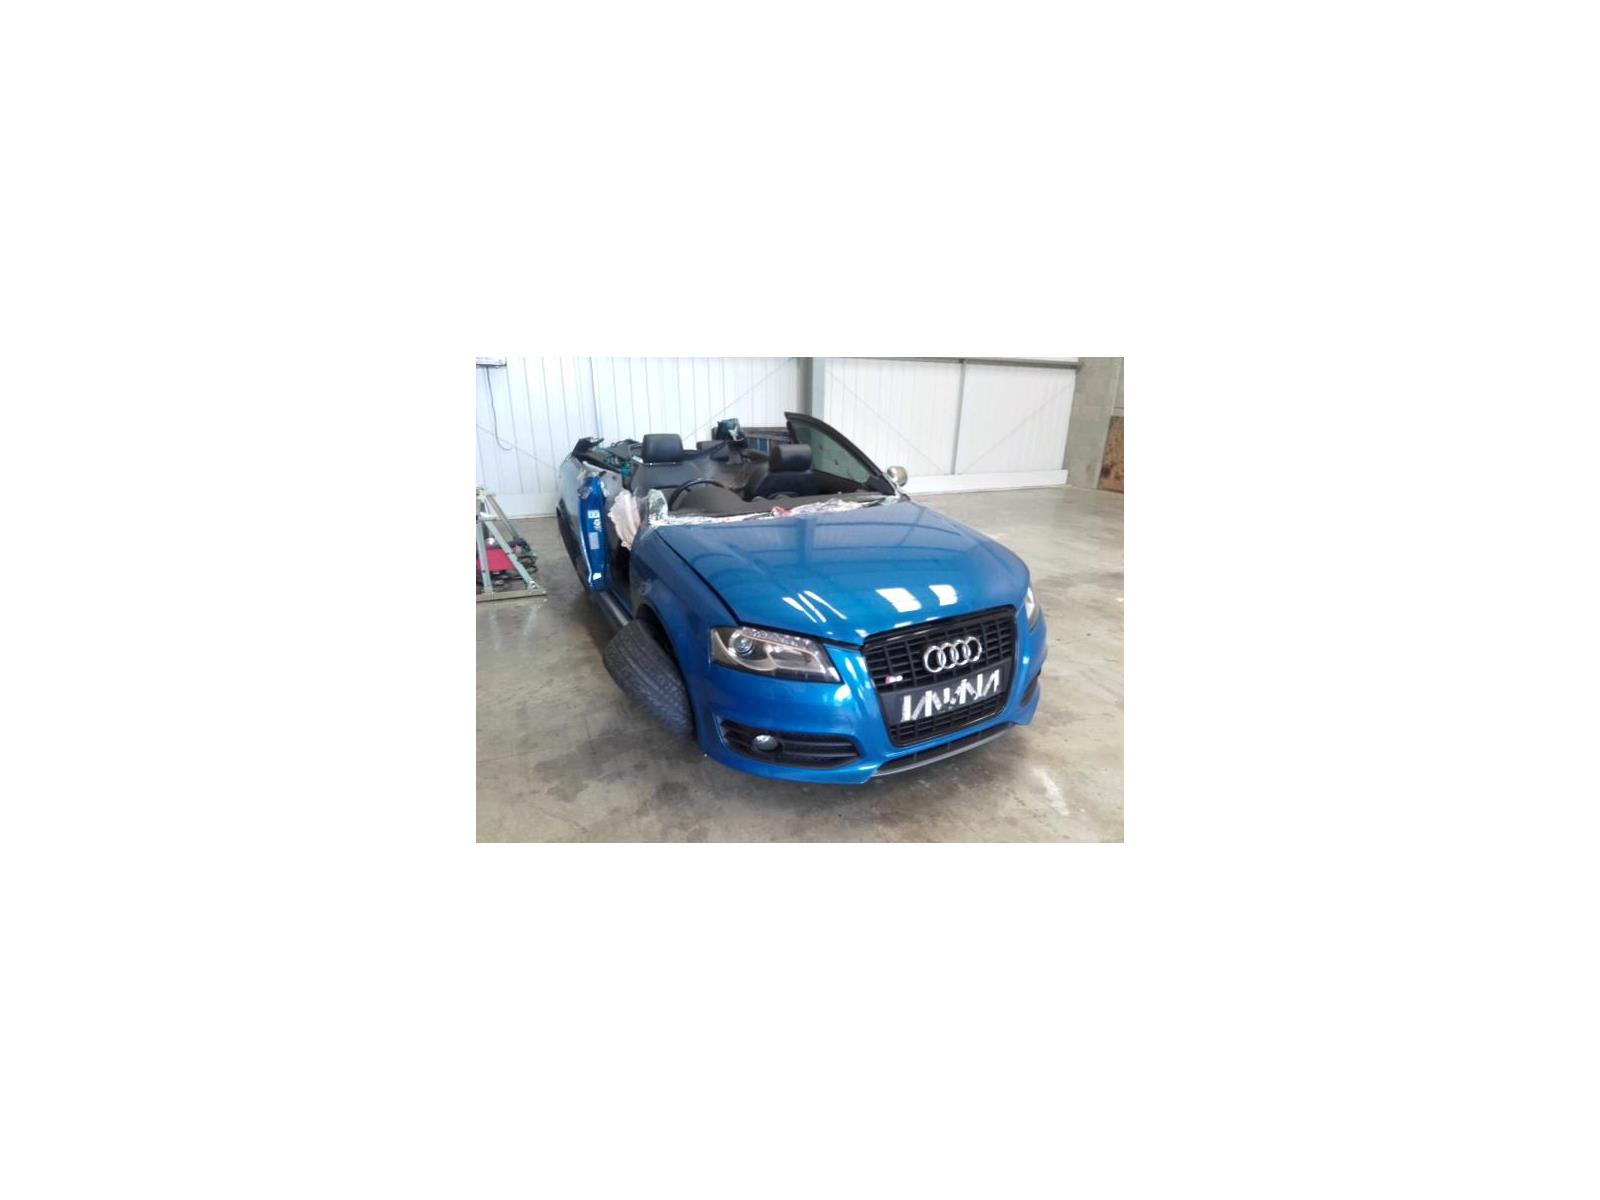 audi a3 2008 to 2013 air conditioning condenser petrol manual rh motorhog co uk Audi A3 Owner Manual Audi A3 Owner Manual